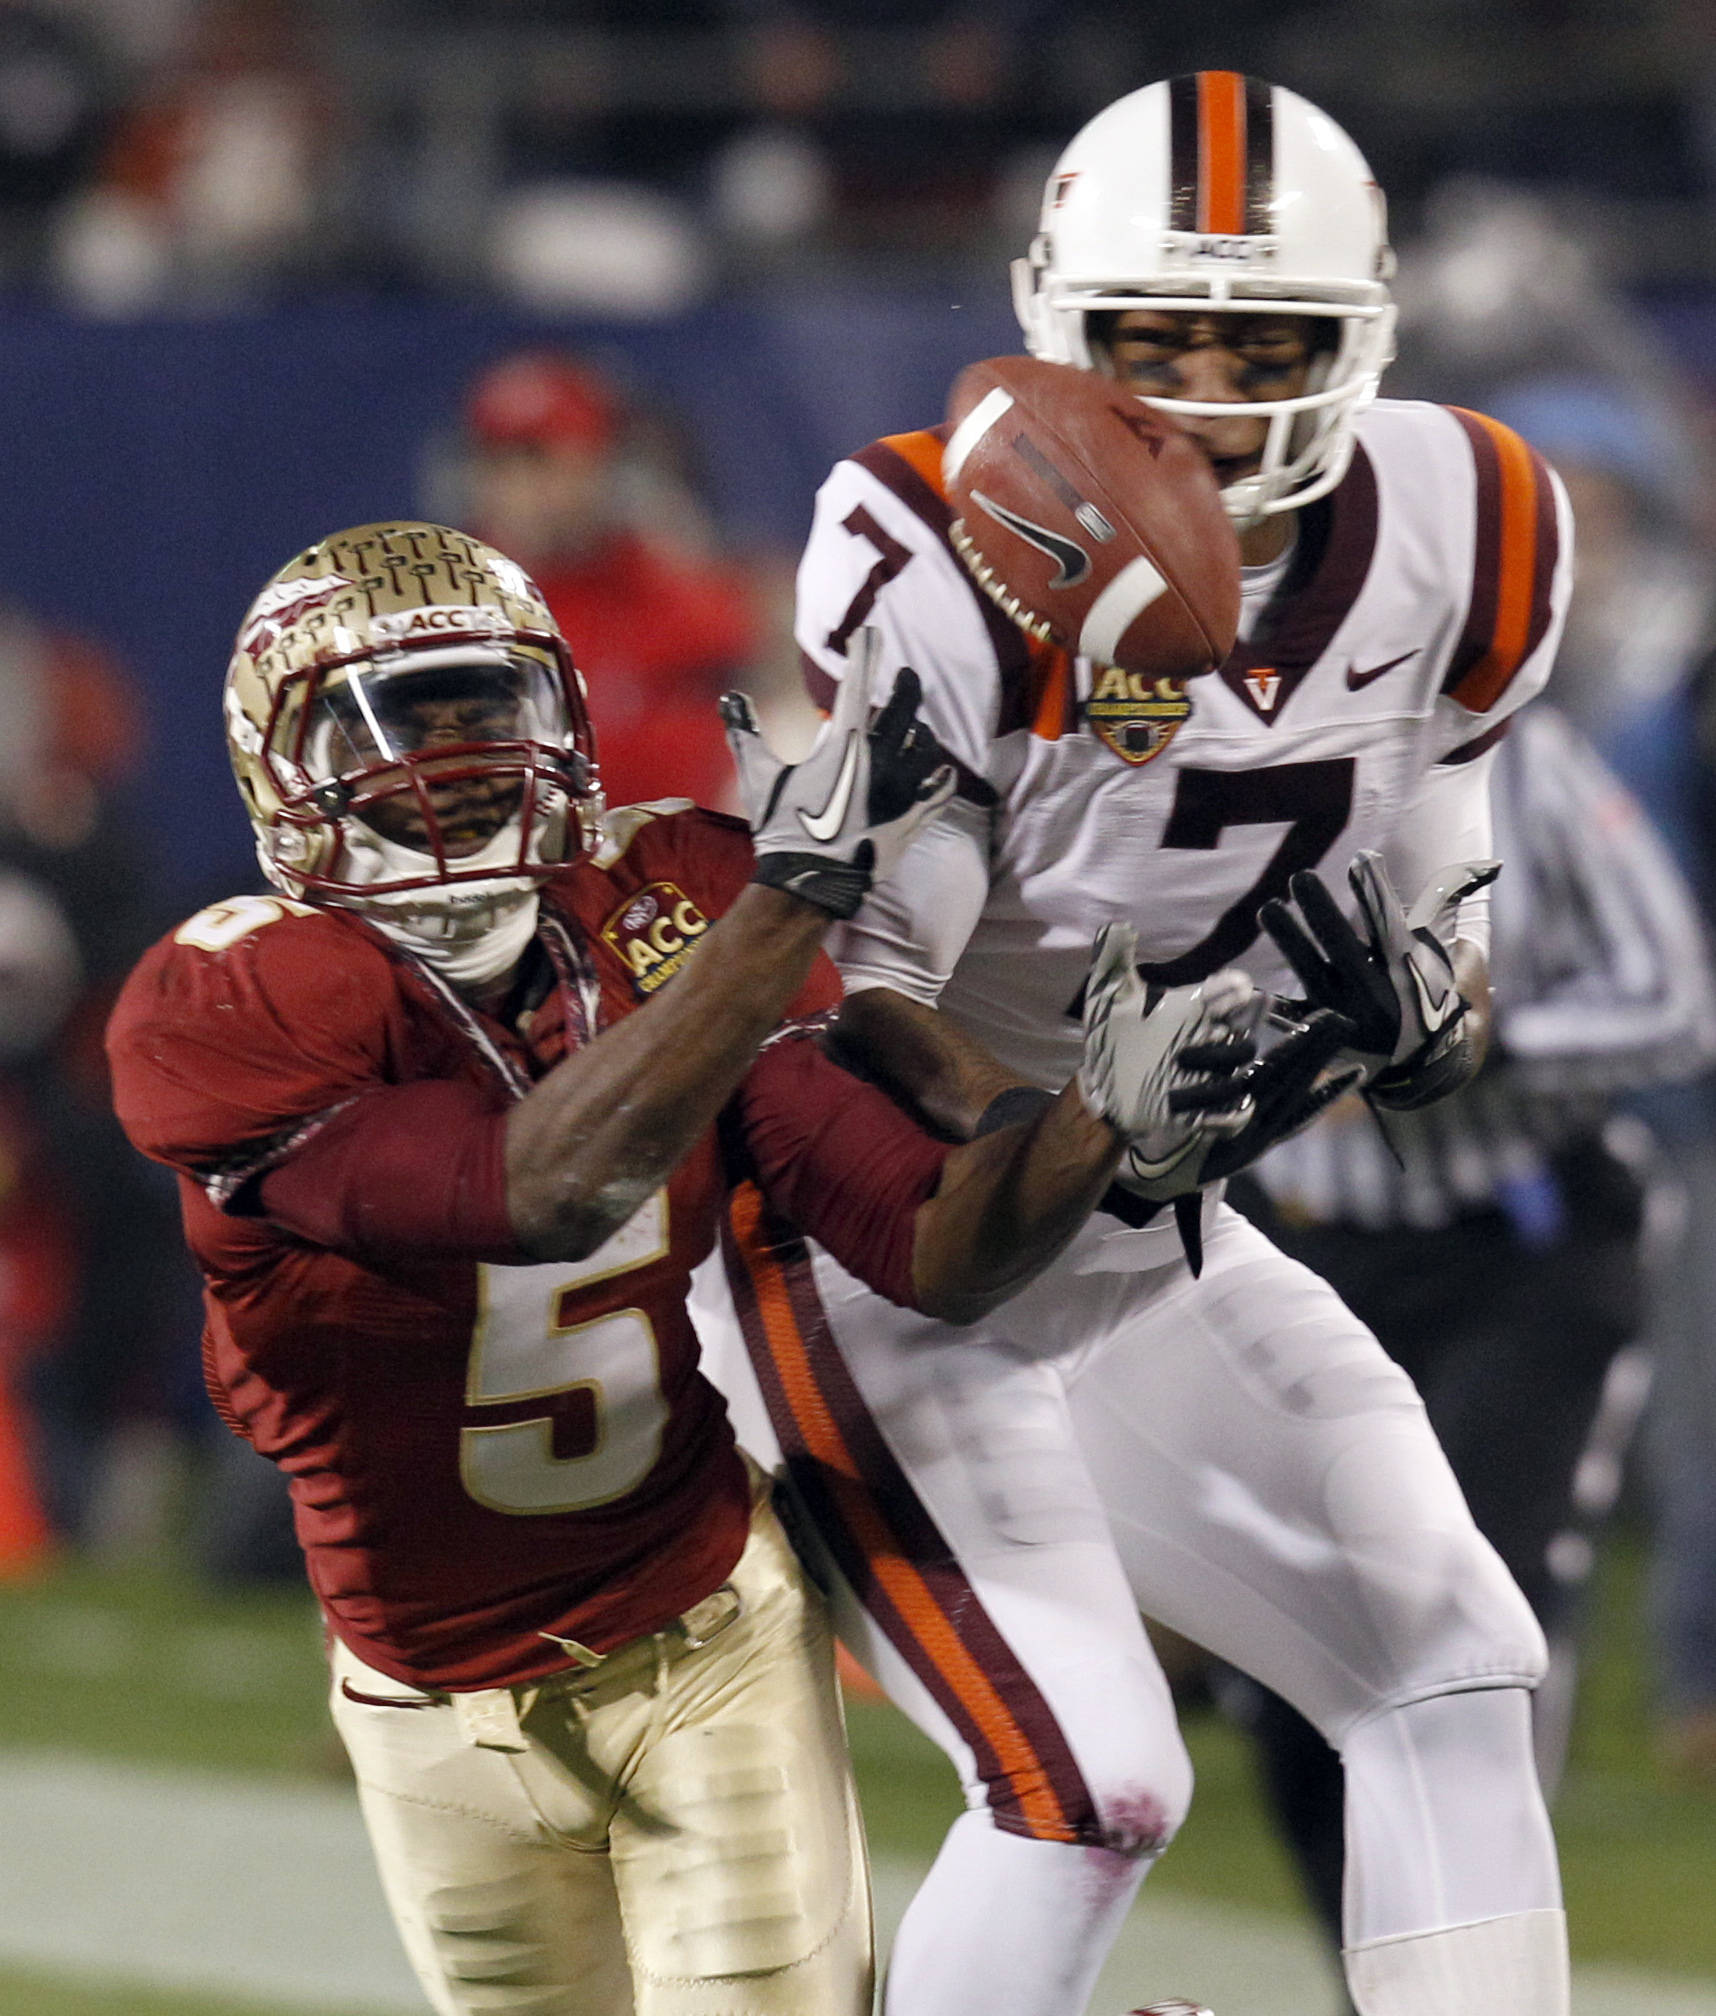 Florida State's Greg Reid knocks the ball from Virginia Tech's Marcus Davis.